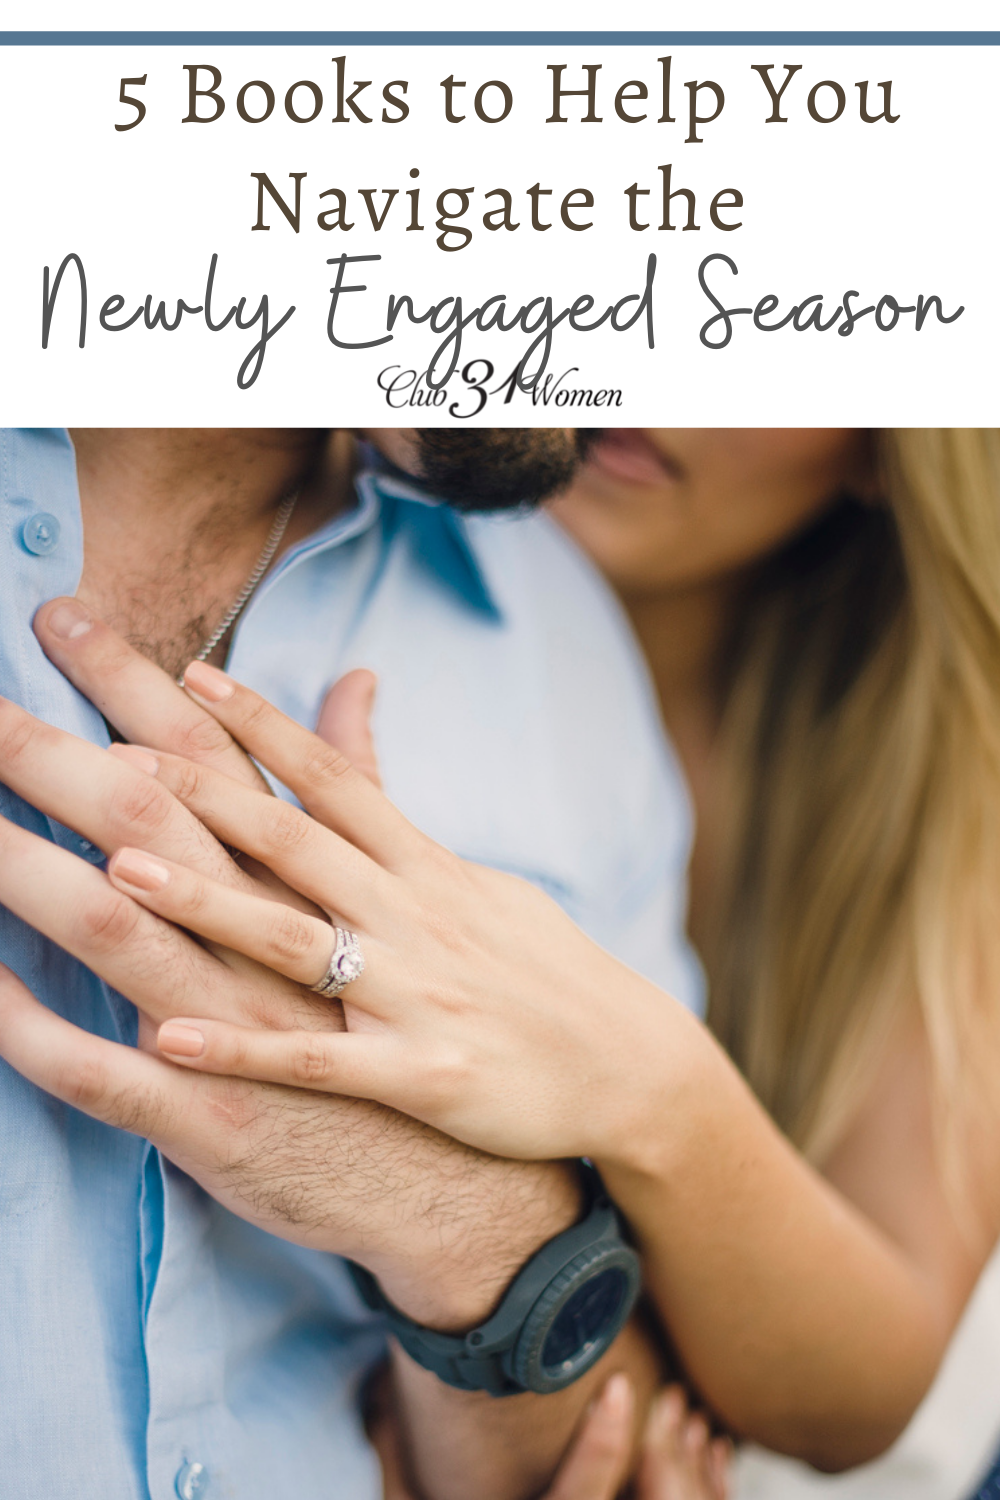 If someone you know is newly engaged, they may be interested in knowing what to expect as they begin a new life with someone, together. via @Club31Women